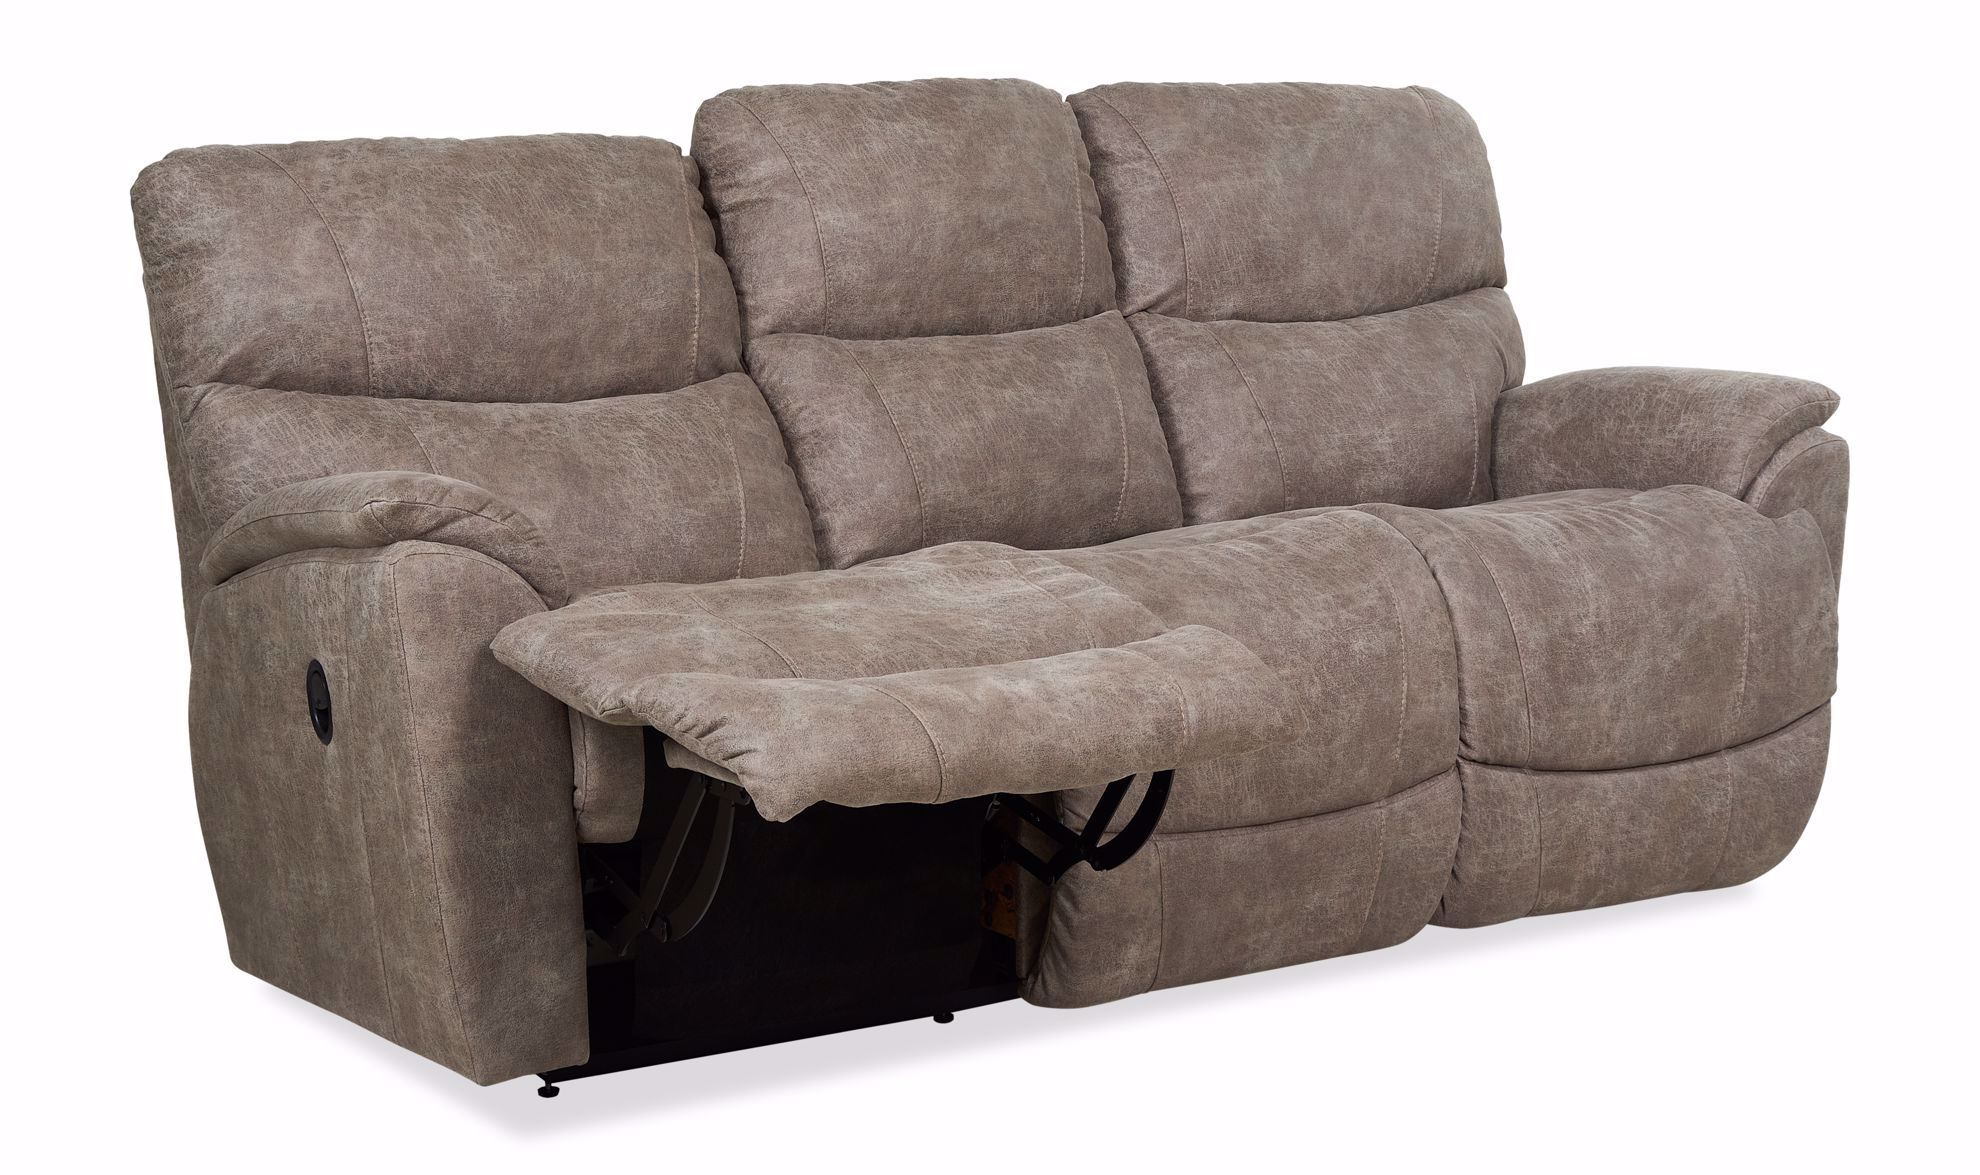 Picture of Trouper Sable Reclining Sofa